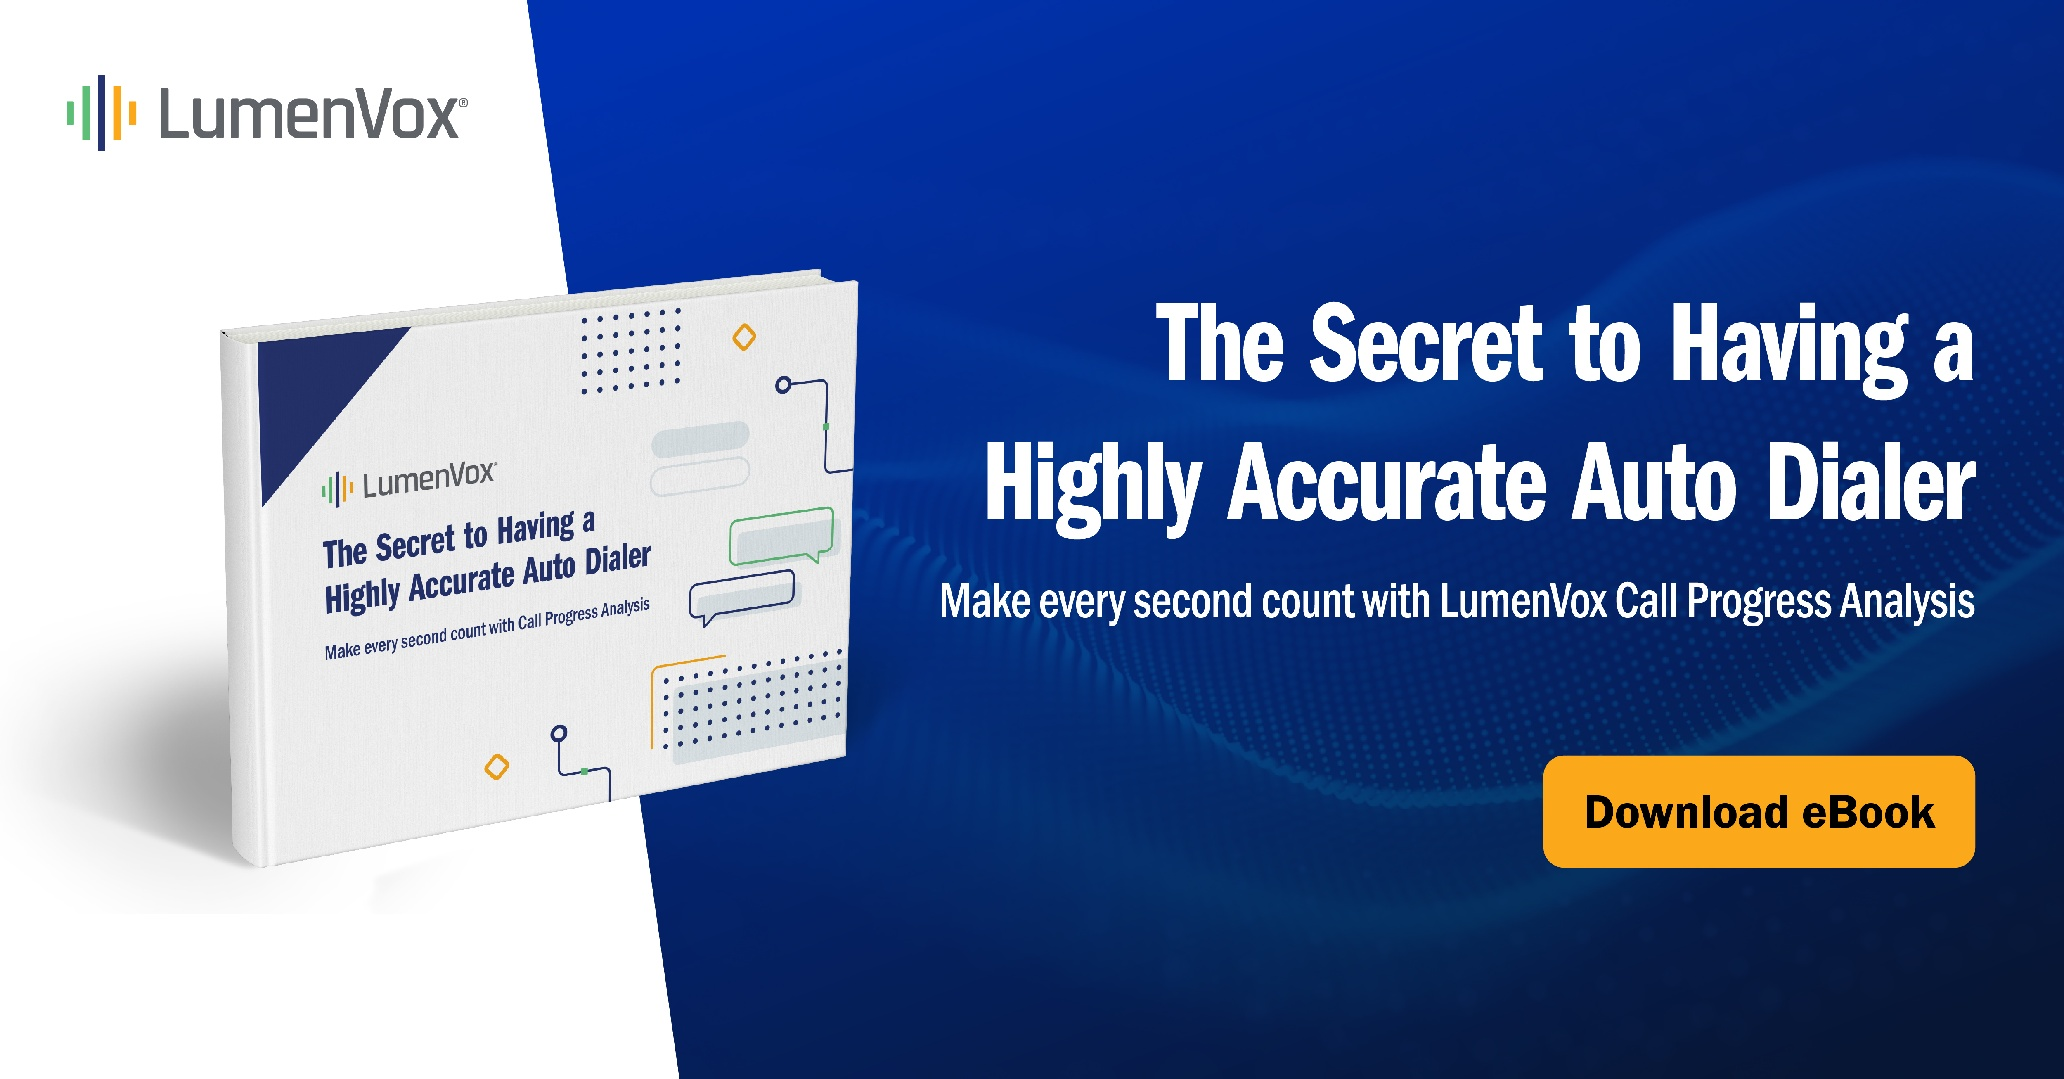 Download The Secret to Having a Highly Accurate Auto Dialer Today